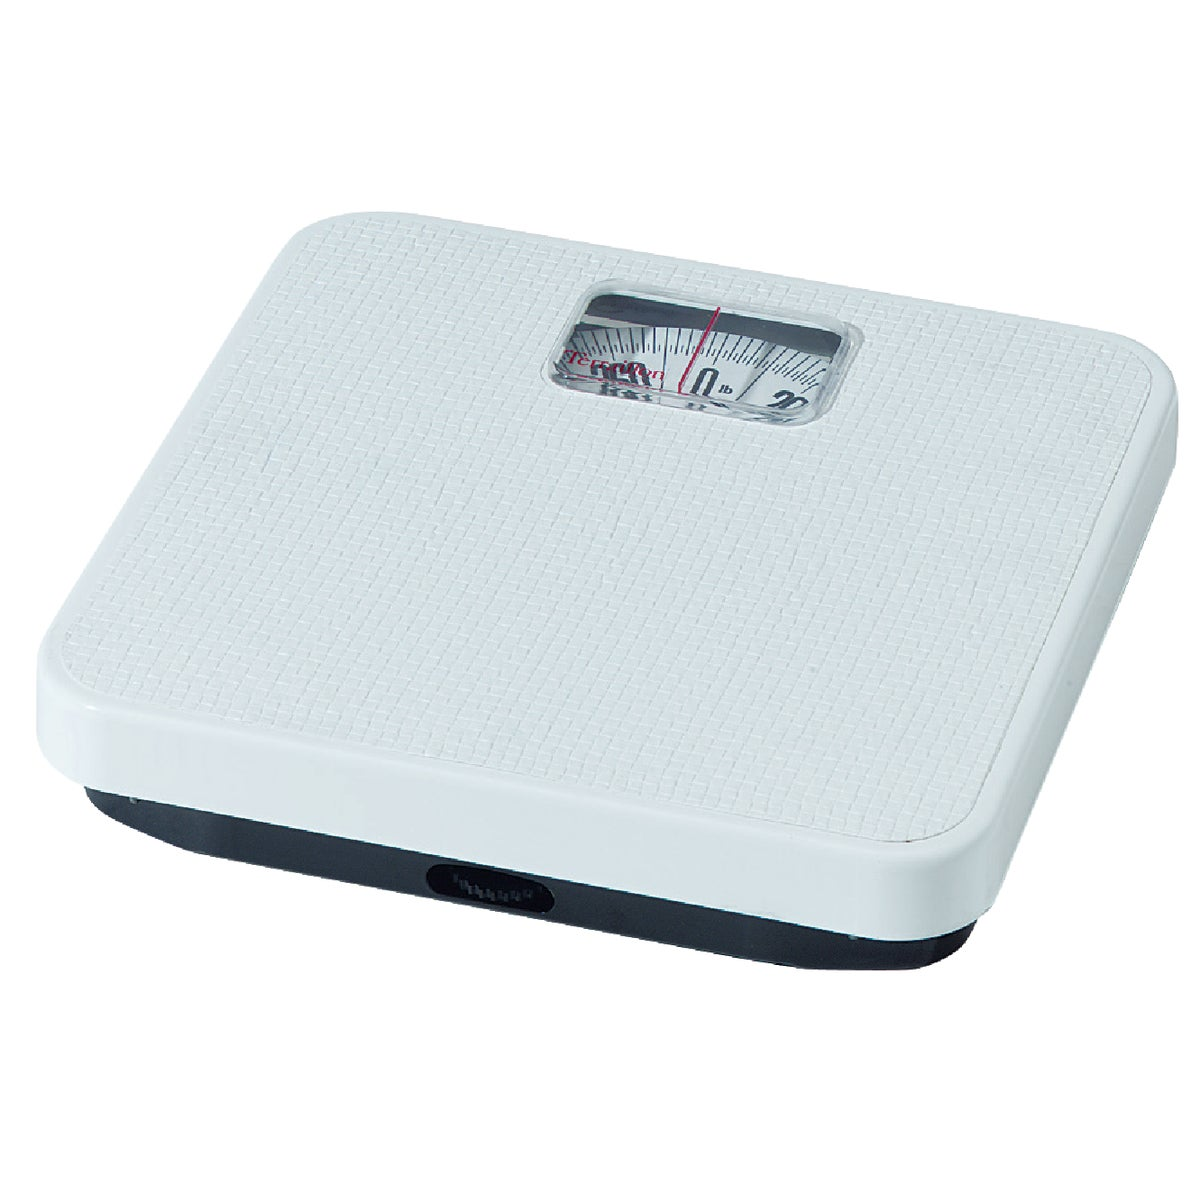 300LB WHT BATH SCALE